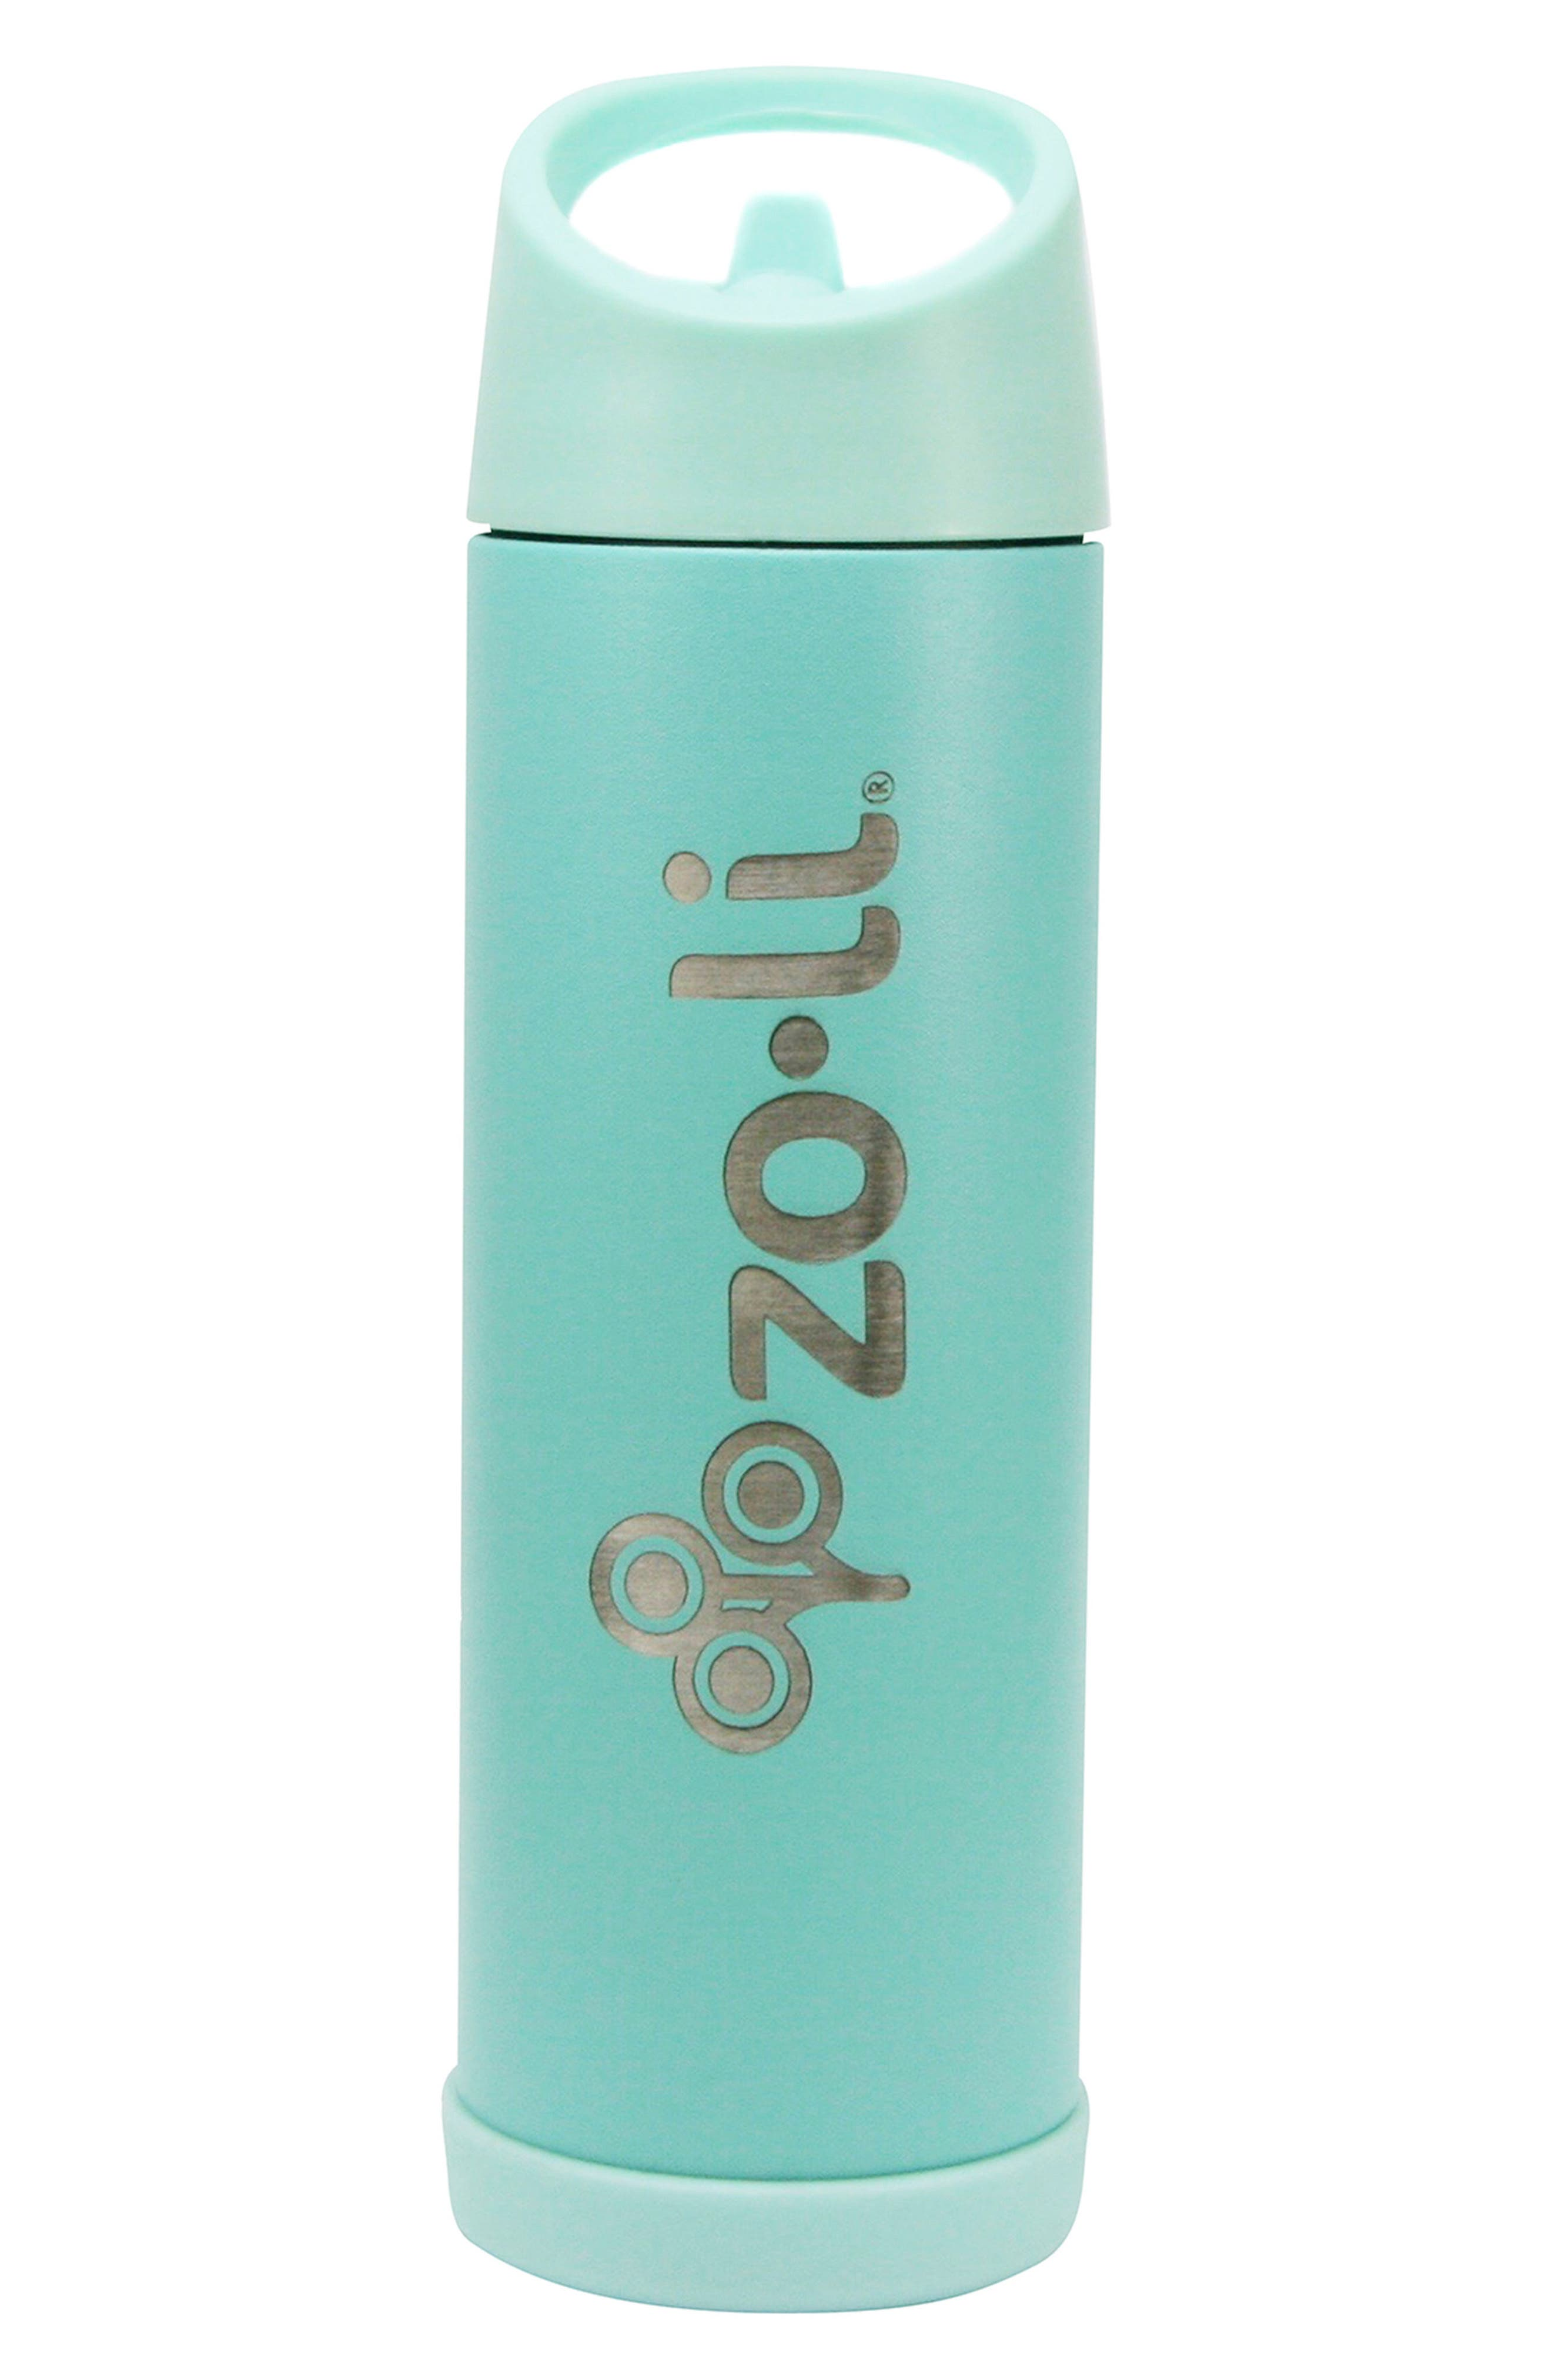 Alternate Image 1 Selected - ZoLi POW Pip 16-Ounce Insulated Stainless Steel Bottle with Straw